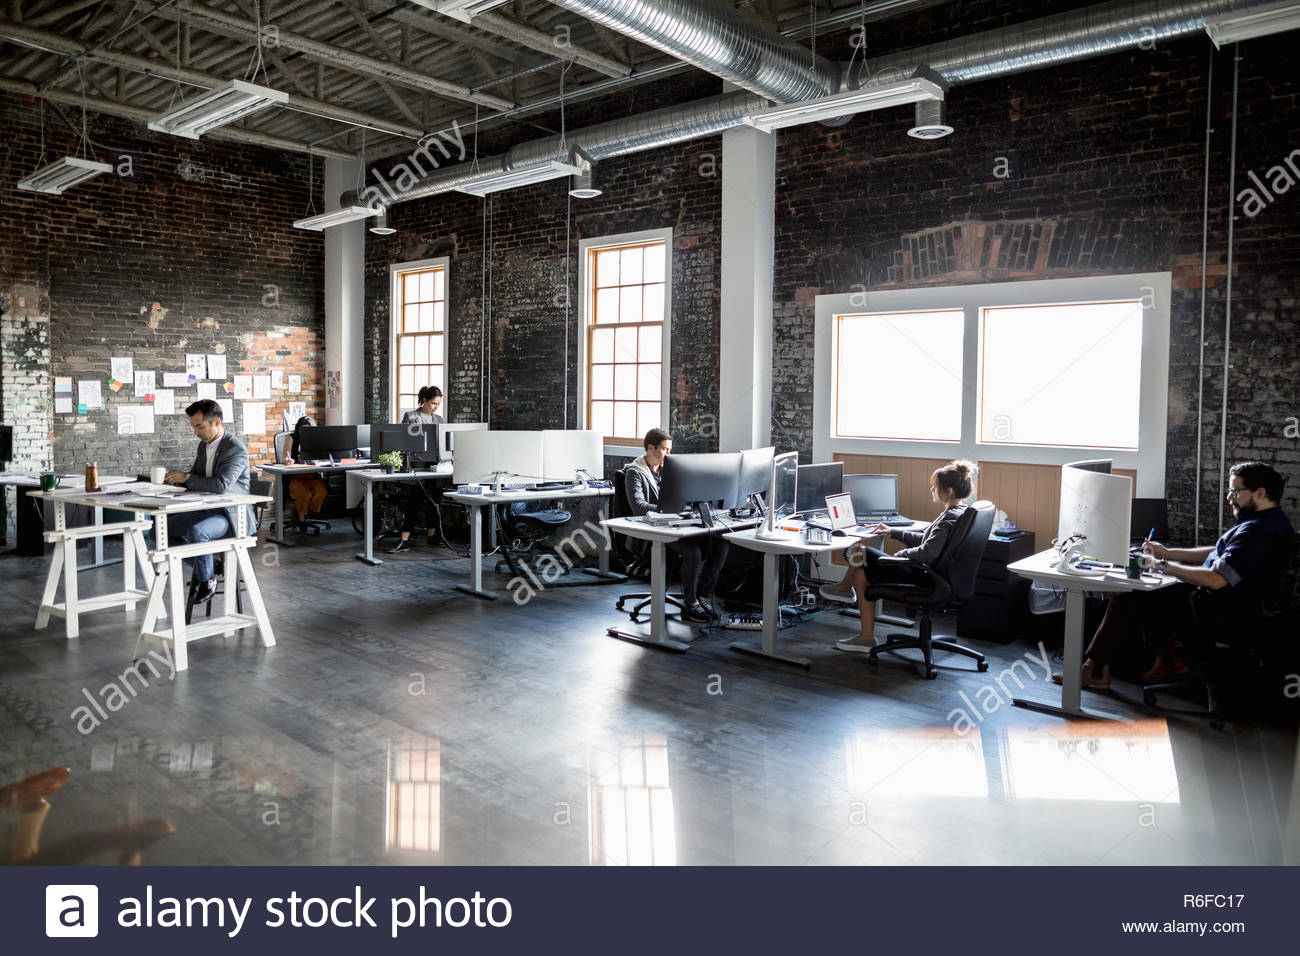 Creative business people working at desks in open space loft office - Stock Image